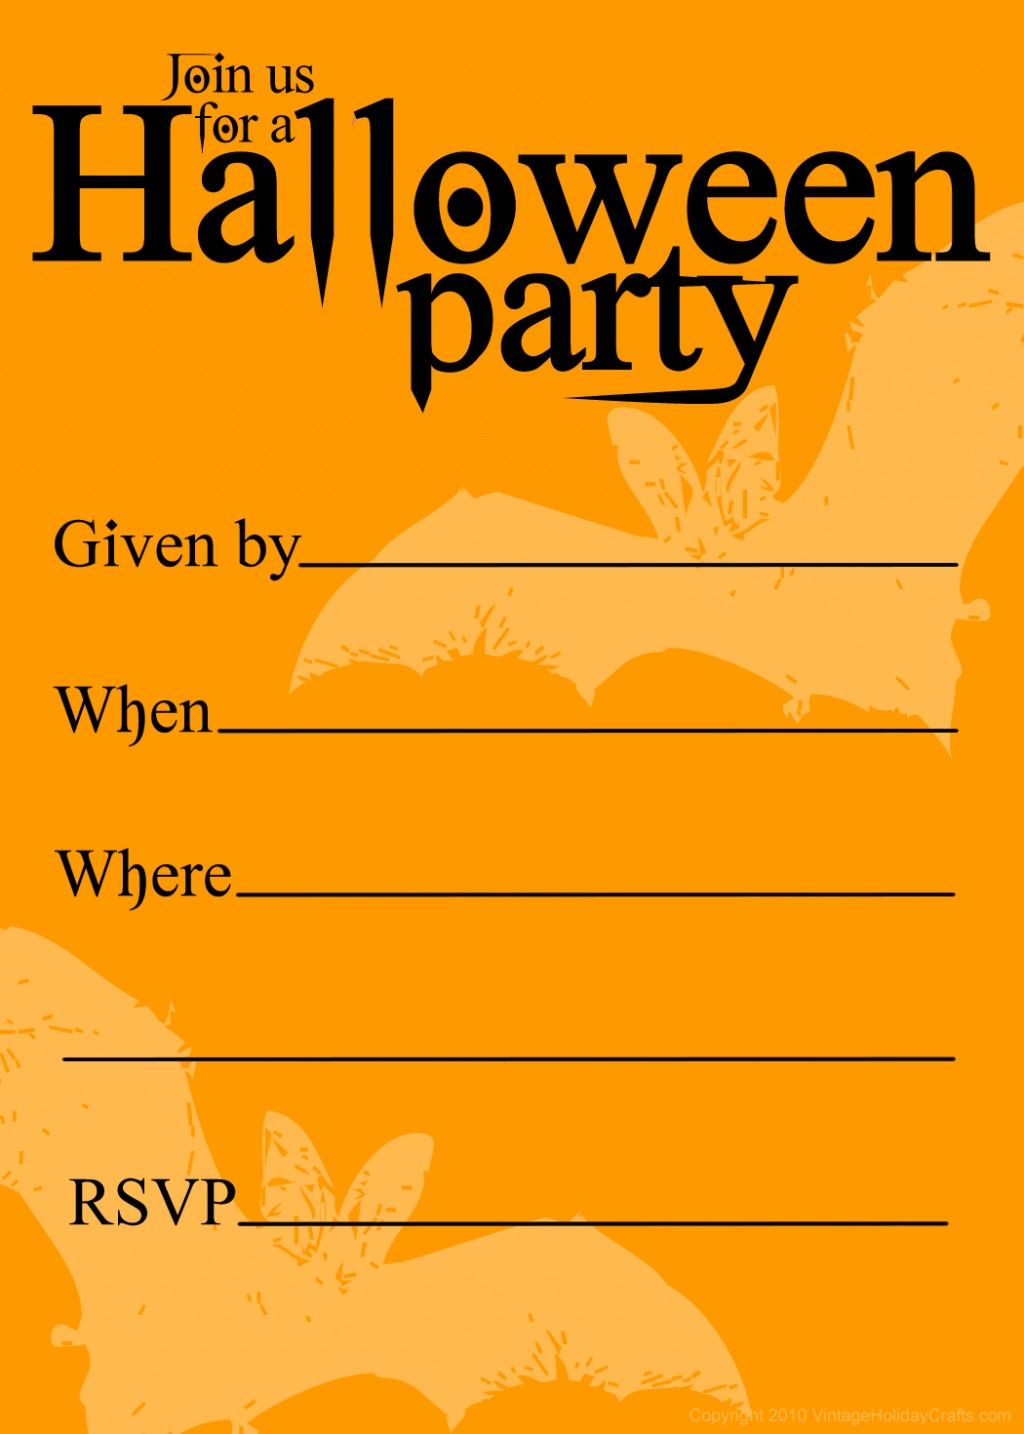 Anniversary birthday cheer up congratulations engagement events & occasions friendship get well good luck grandparents day holidays. Halloween Party Invitations Printable Free Scary Printable Halloween Party Invitations Halloween Party Invitation Template Halloween Party Invitations